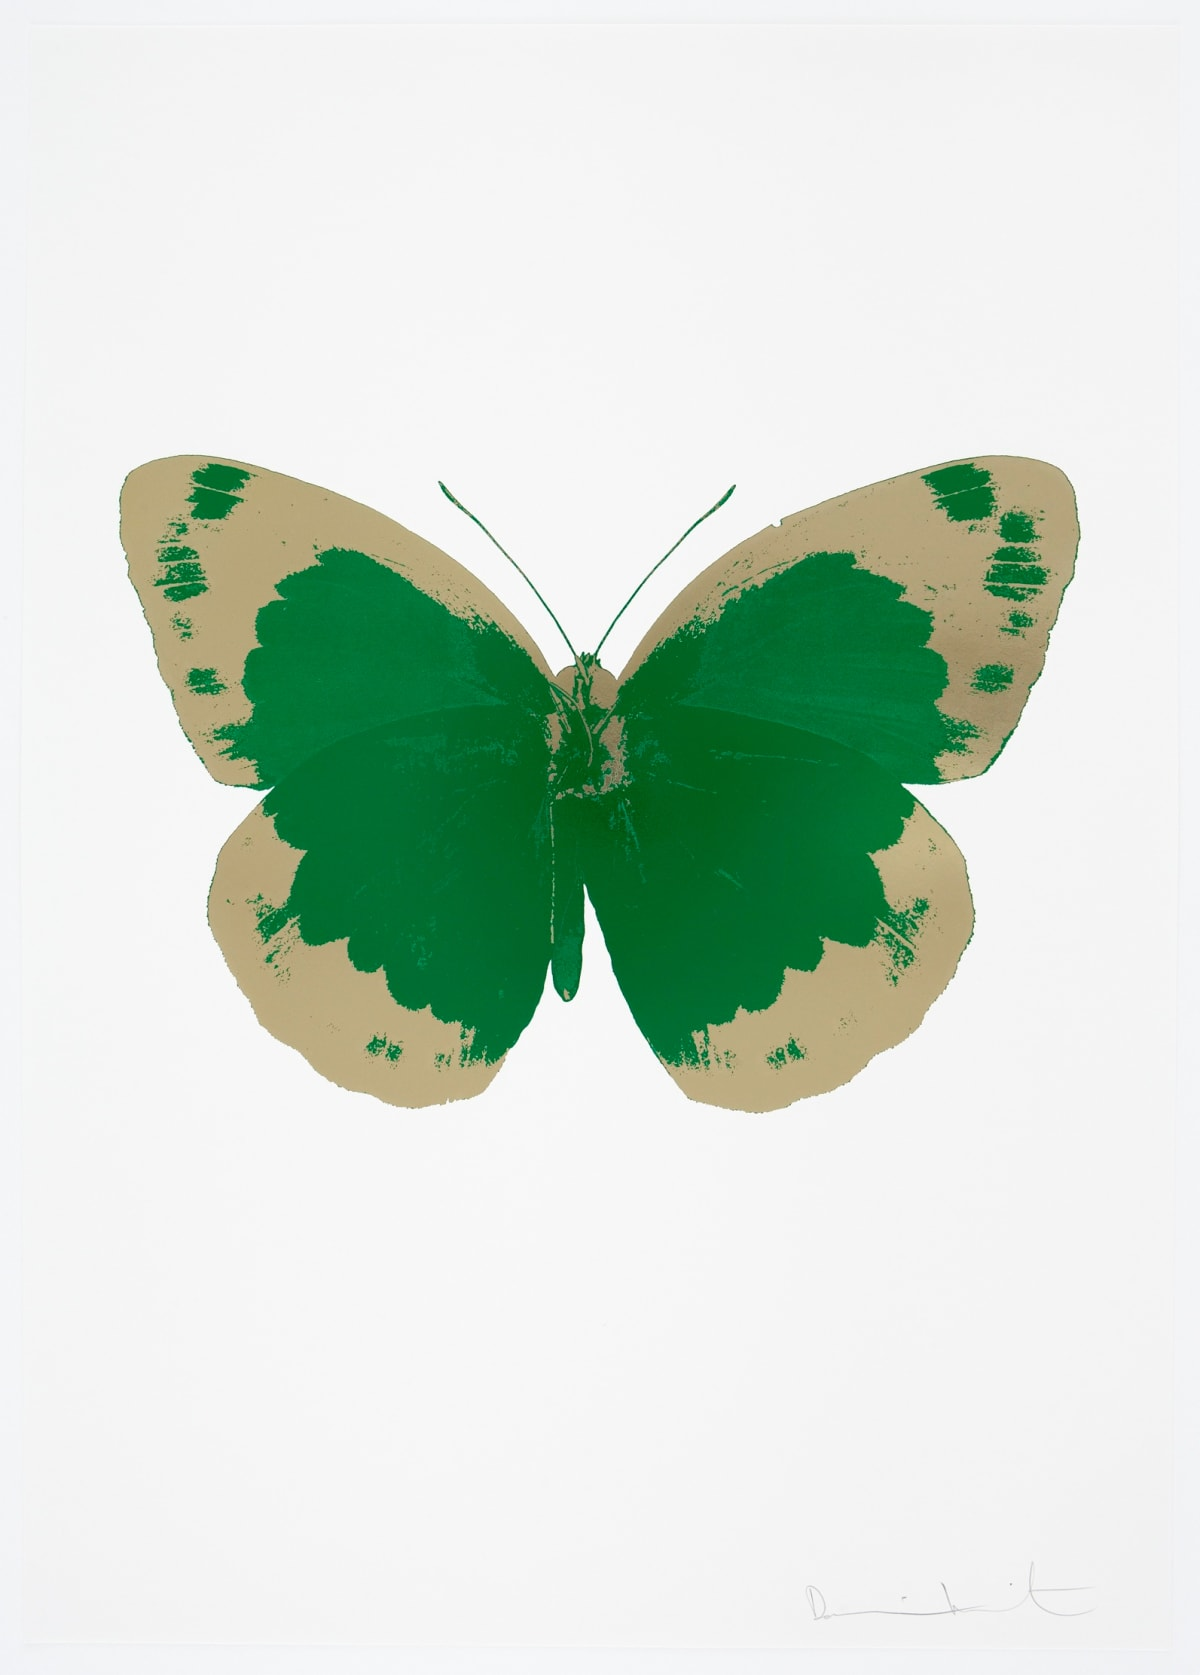 Damien Hirst The Souls II - Emerald Green/Cool Gold/Blind Impression, 2010 2 colour foil block on 300gsm Arches 88 archival paper. Signed and numbered. Published by Paul Stolper and Other Criteria 72 x 51cm OC7824 / 658-7 Edition of 15